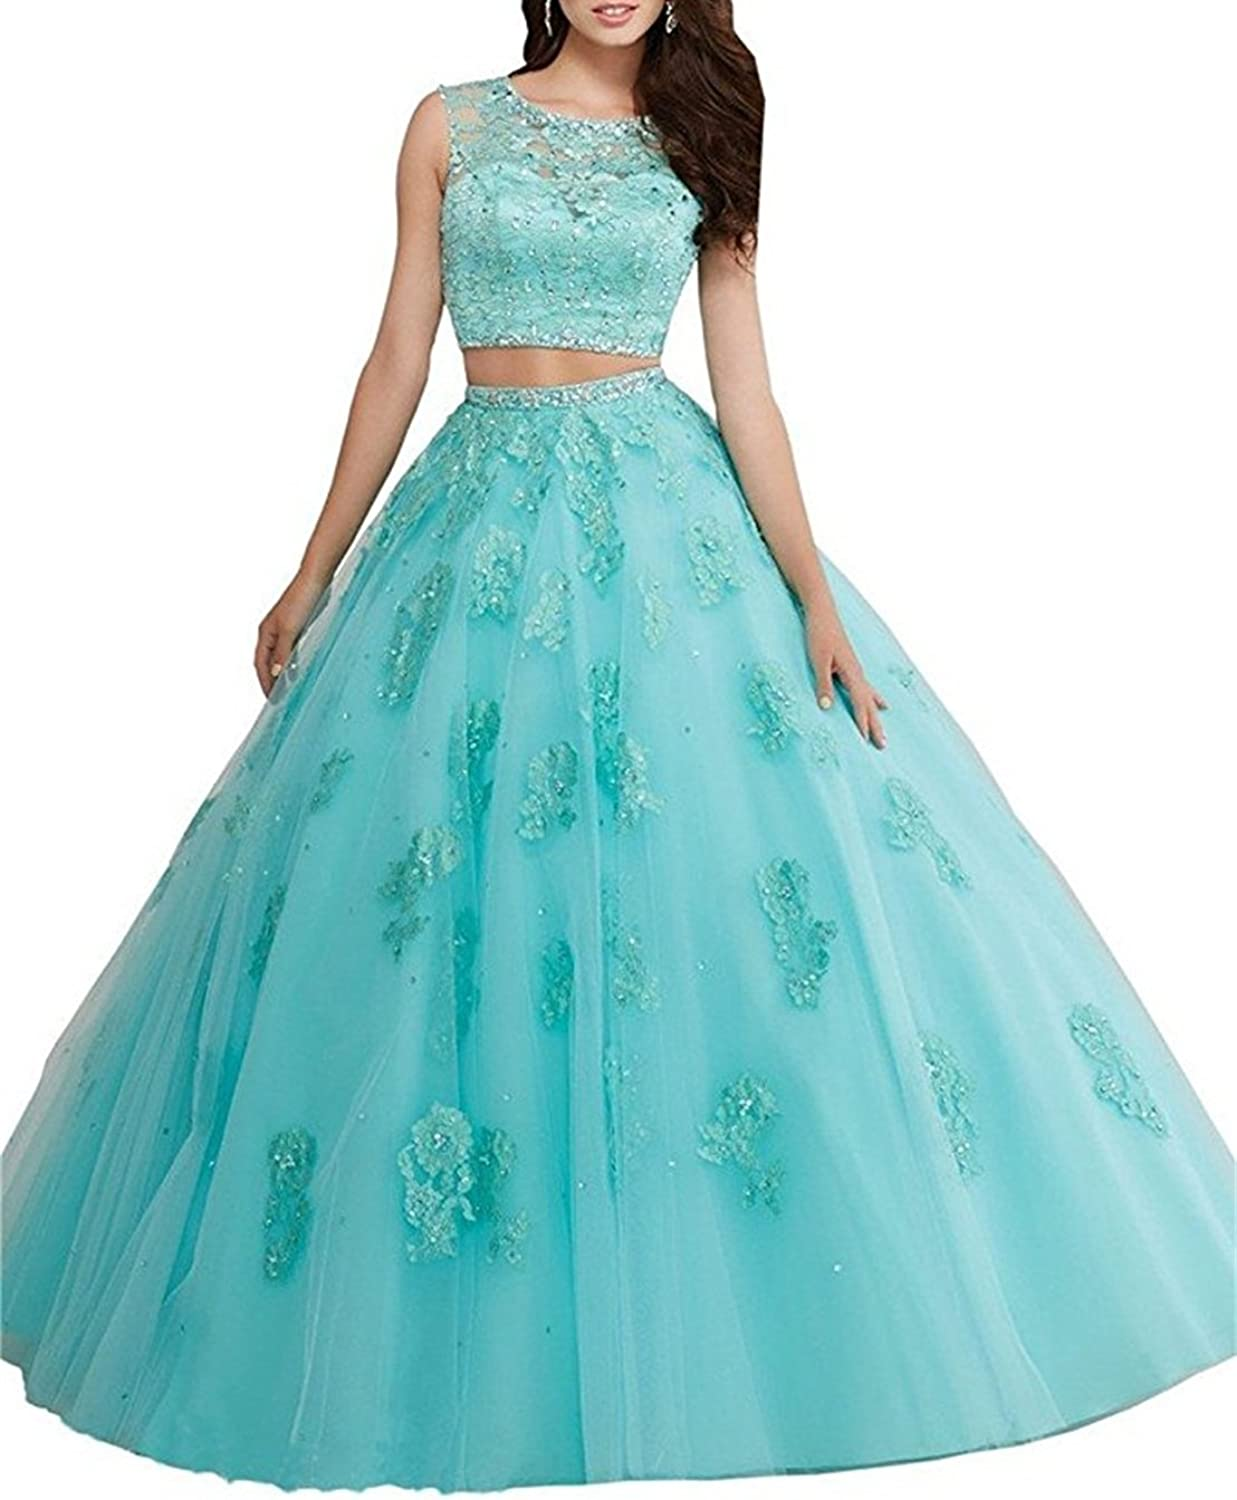 XYHDTQ Women's Beading Long Lace Ball Gown Two Piece Quinceanera Dresses Prom Gowns